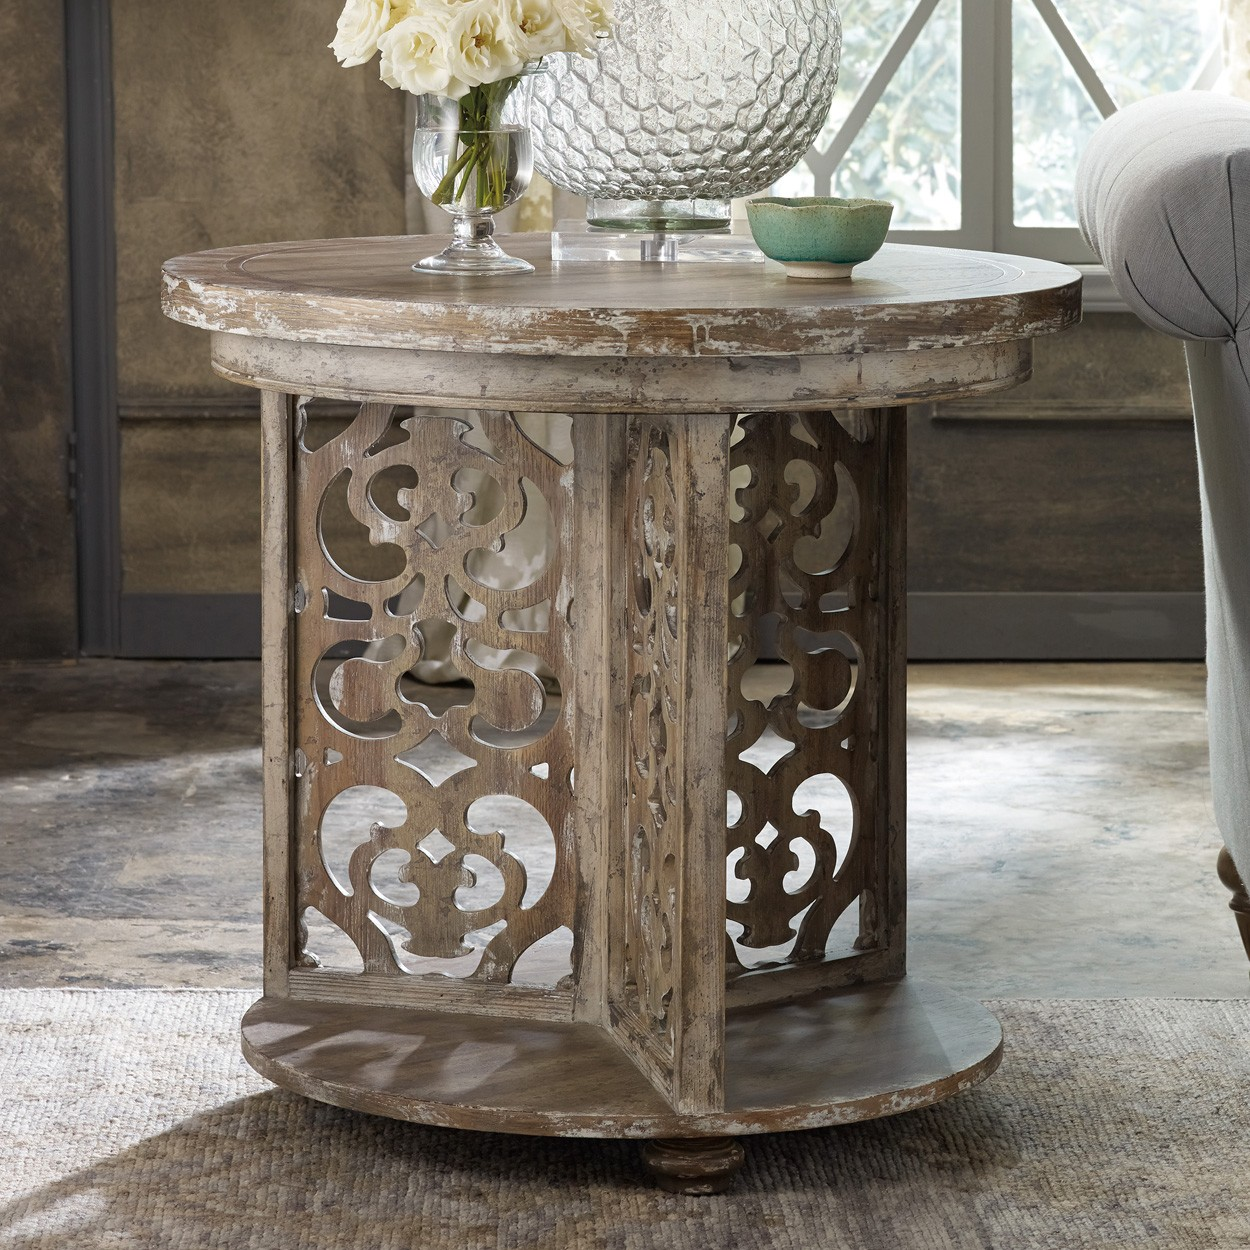 chatelet wood round accent table caramel froth humble abode roundaccenttable caramelfroth hookerfurniture metal and outdoor storage cupboard inch runner iron umbrella stand patio